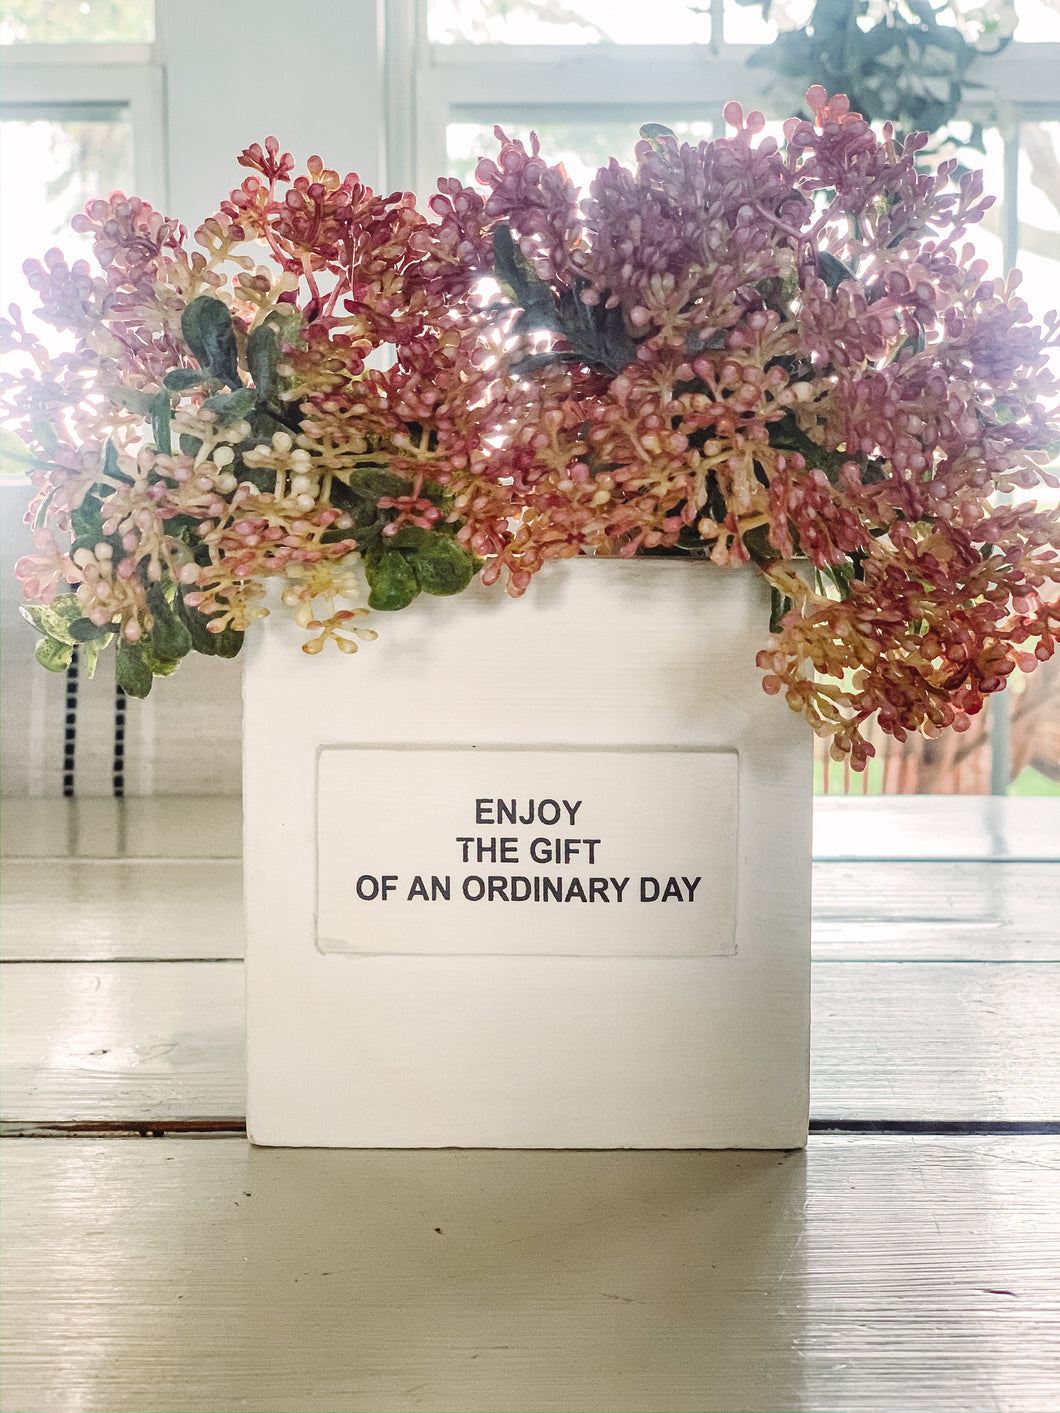 Enjoy the gift of an ordinary day nest box - Baycreek & Co